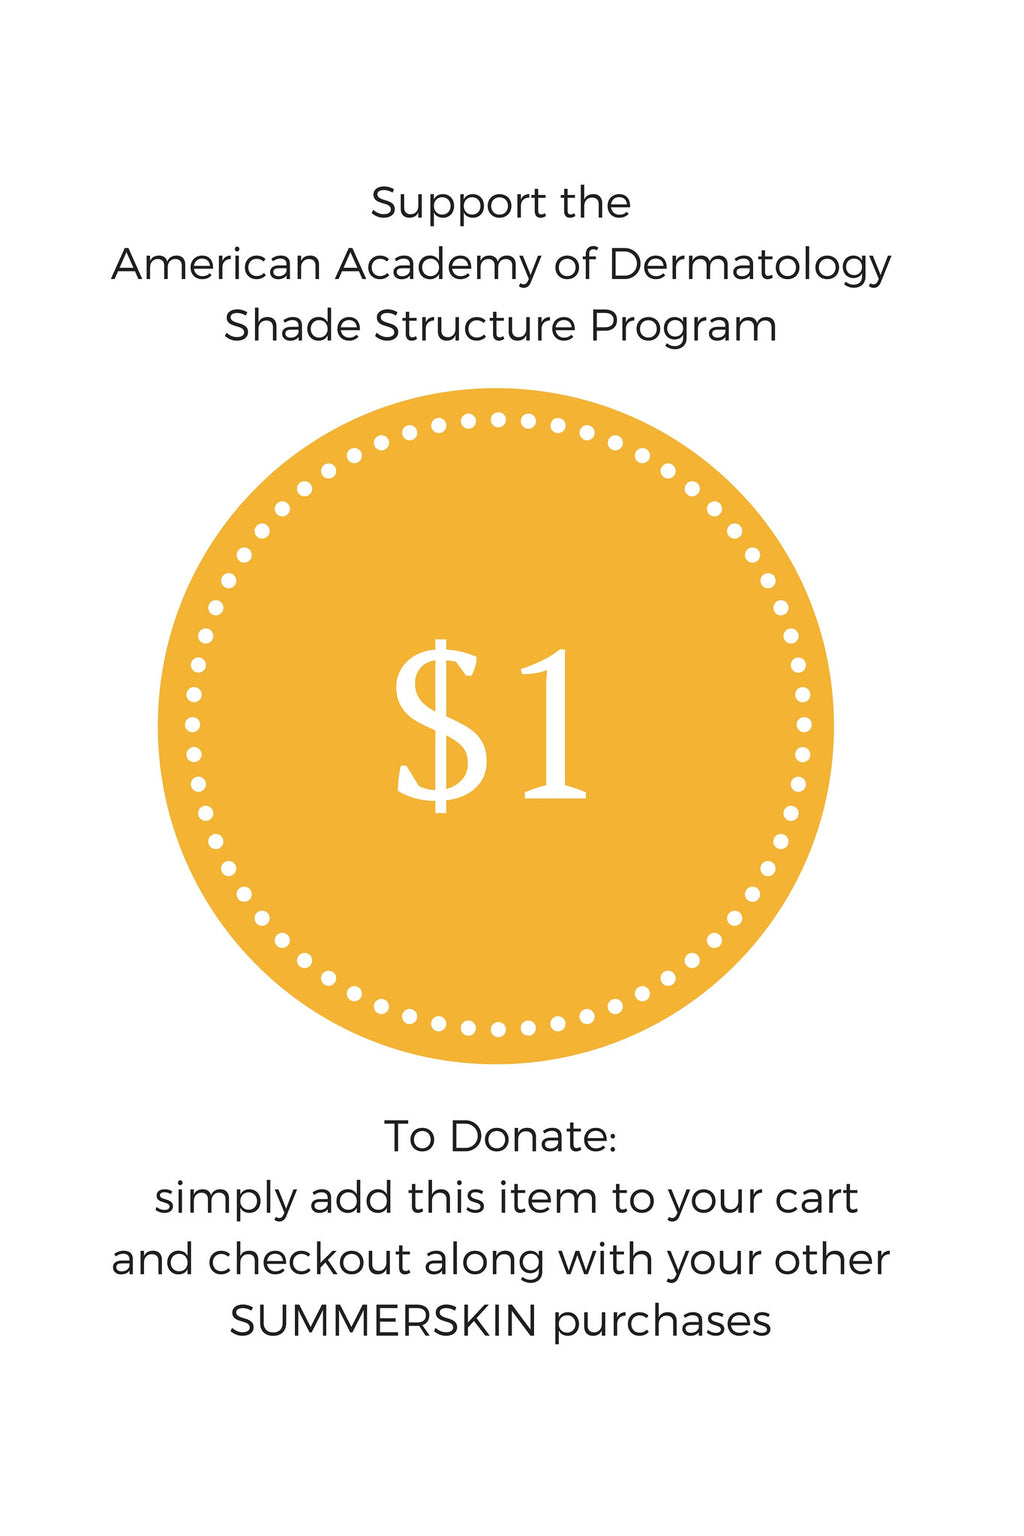 $1 to Help Build Shade Structures